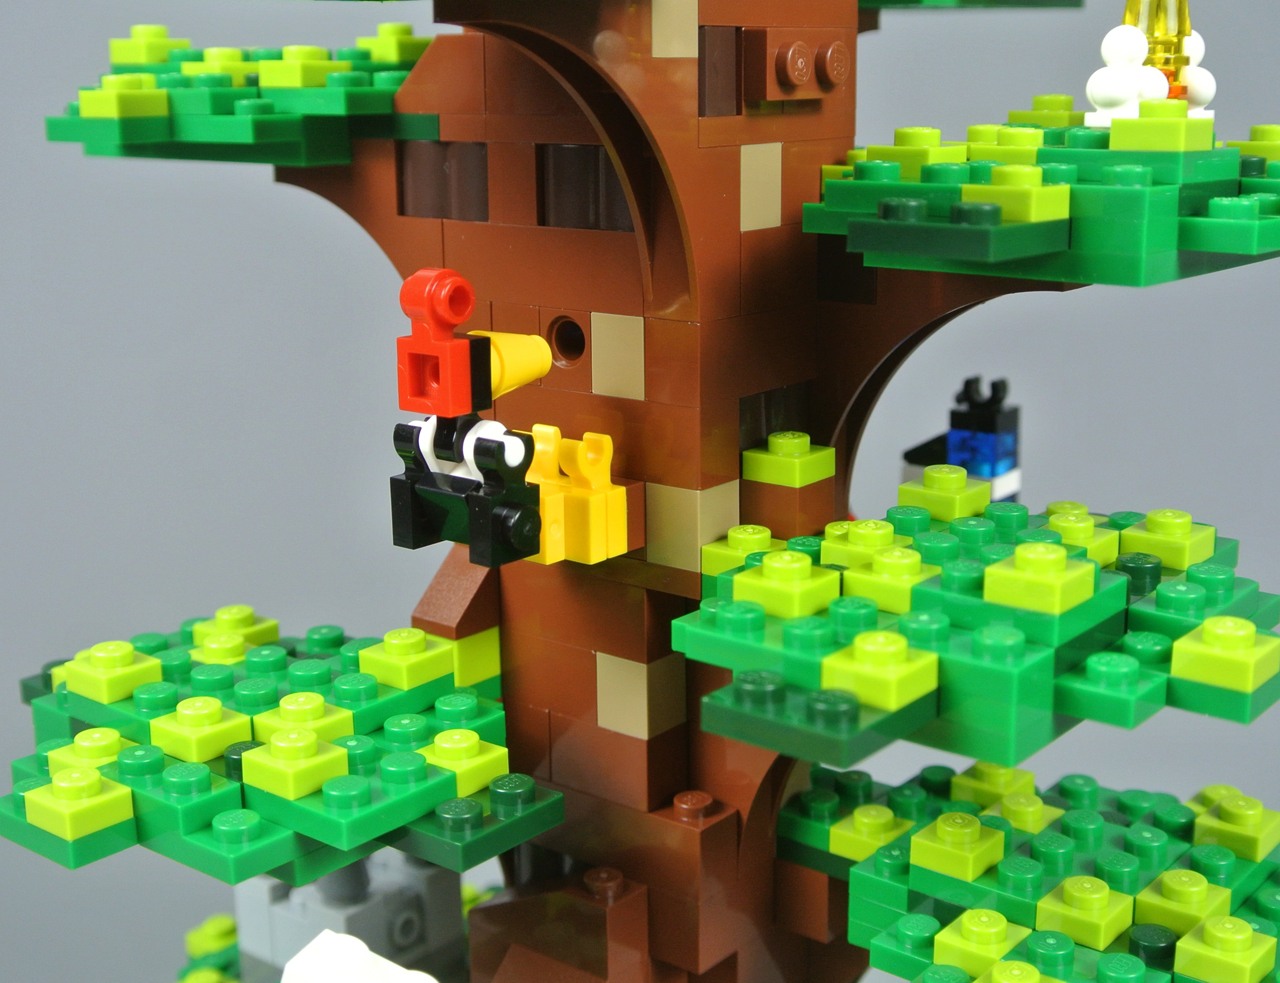 Flickr.com - CC License 20 - LEGO House Tree of Creativity - Foto by Brickset